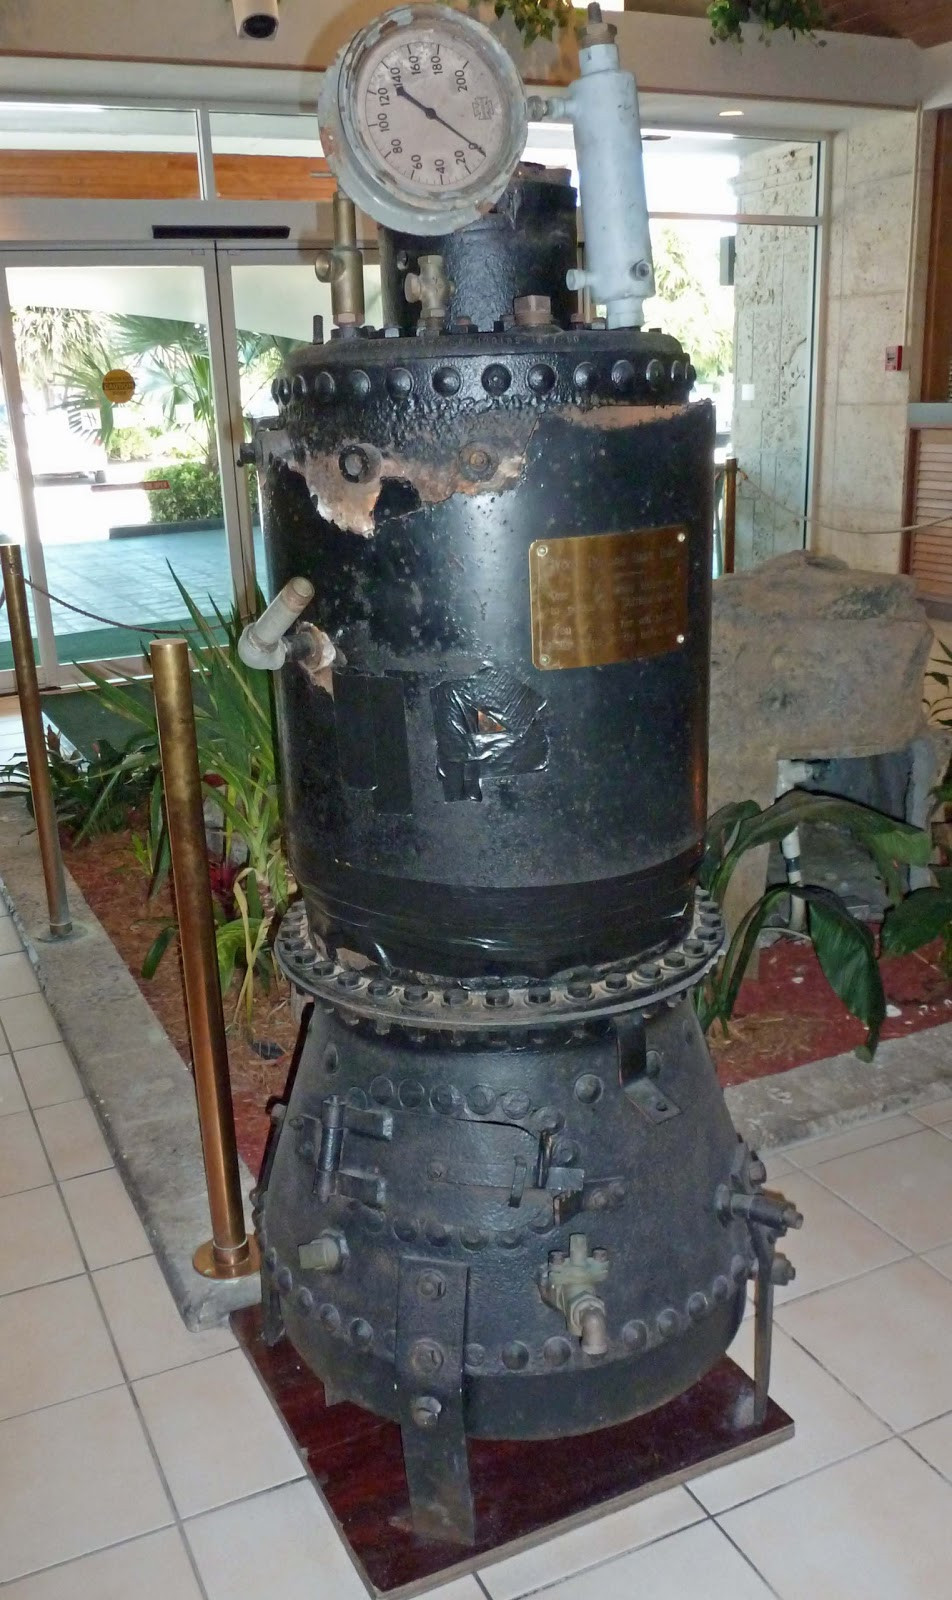 Best ideas about DIY Wood Boilers . Save or Pin Woodwork Plans For Wood Fired Boiler PDF Plans Now.